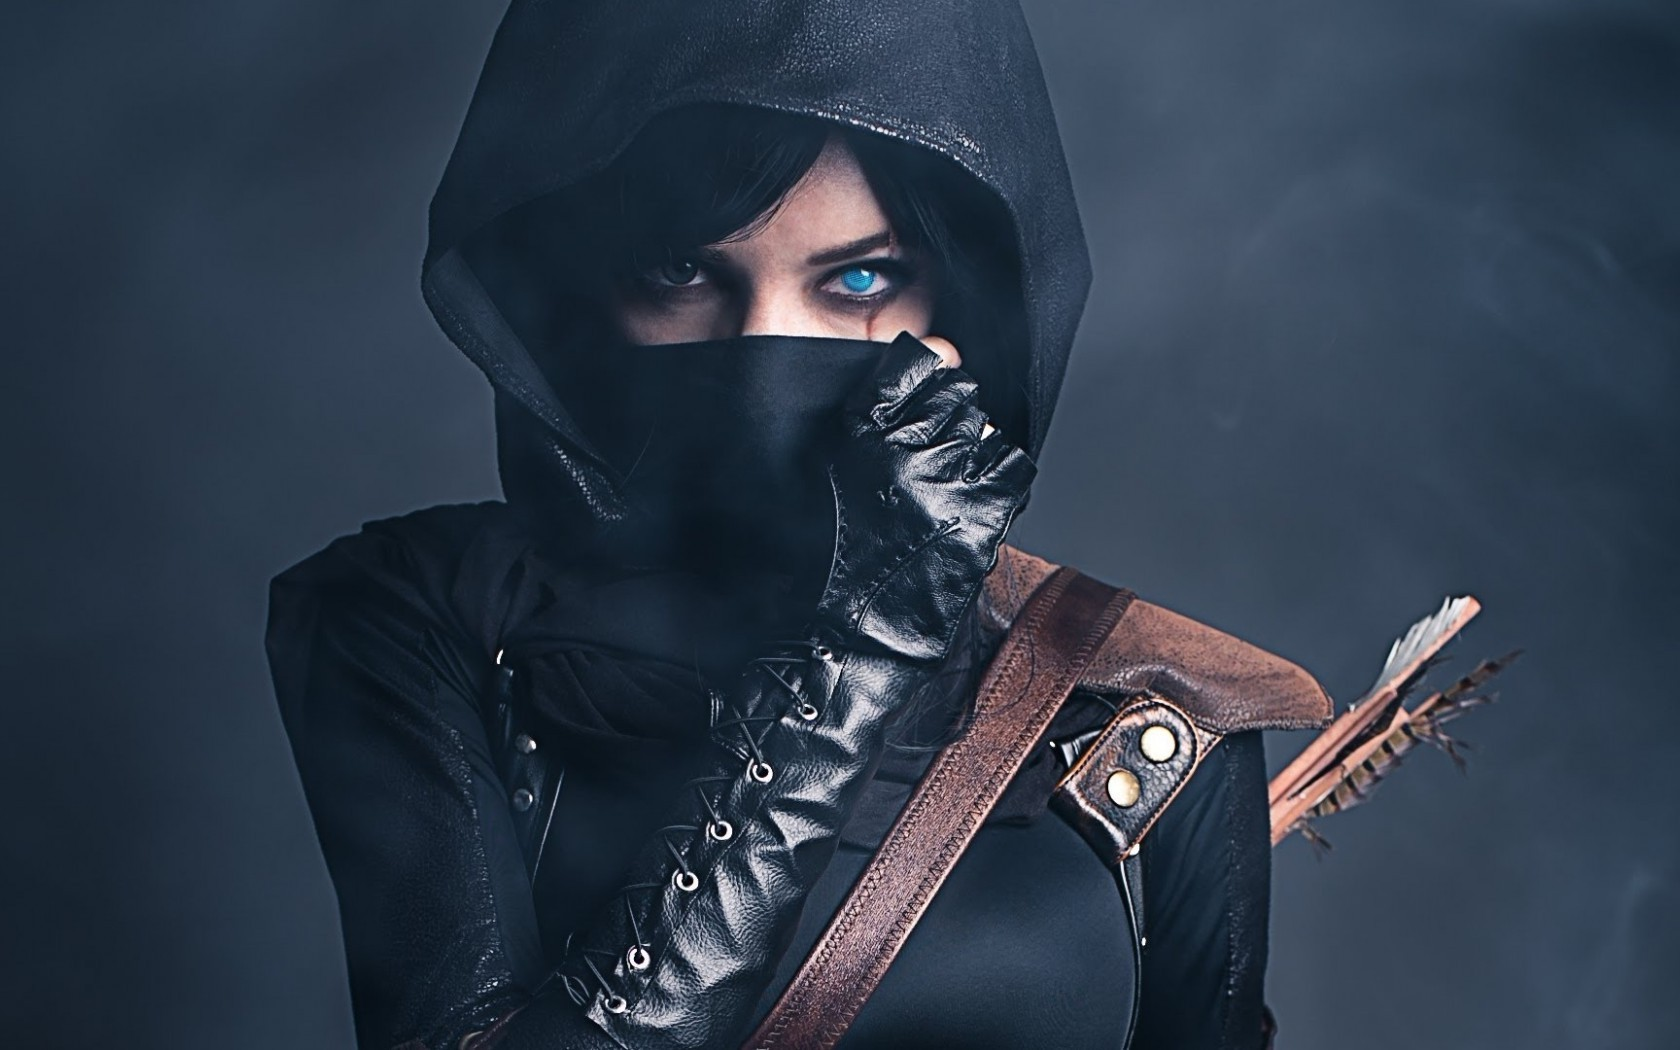 ninjas, women, arrows, cosplay, thief, genderbend wallpapers hd